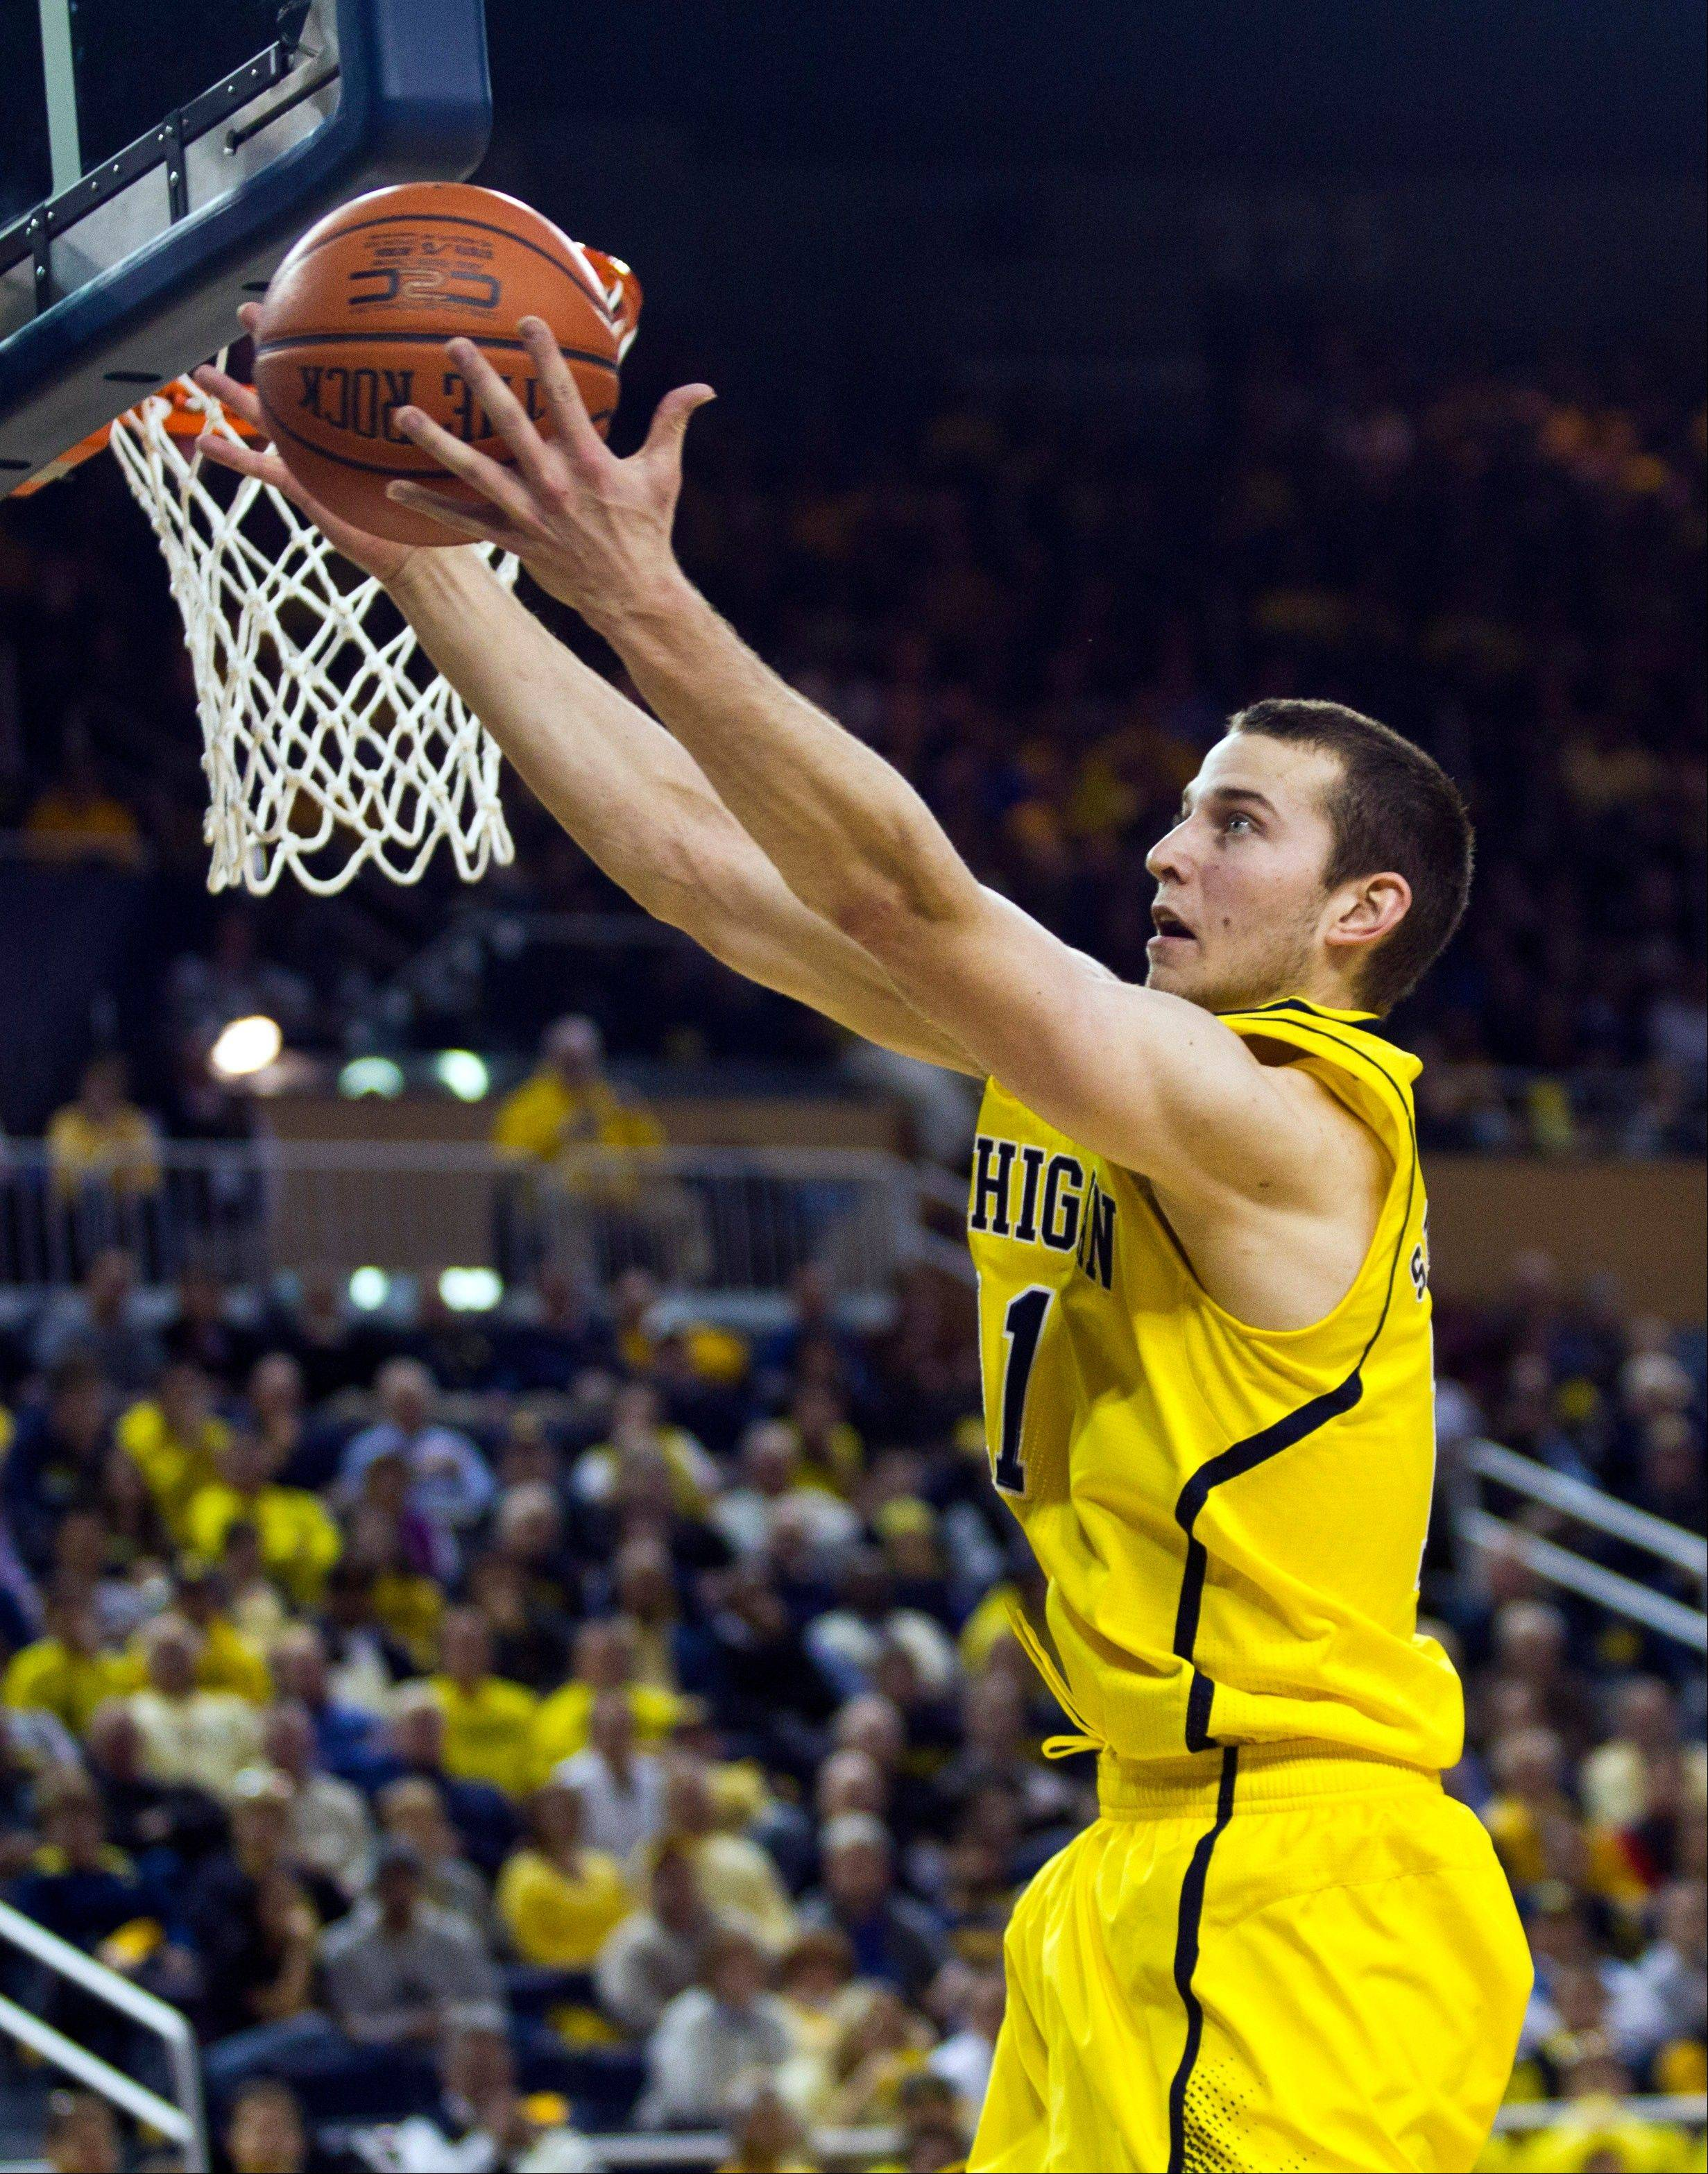 Michigan guard Nik Stauskas grabs a defensive rebound Tuesday during the first half against North Carolina State, Tuesday in Ann Arbor, Mich.